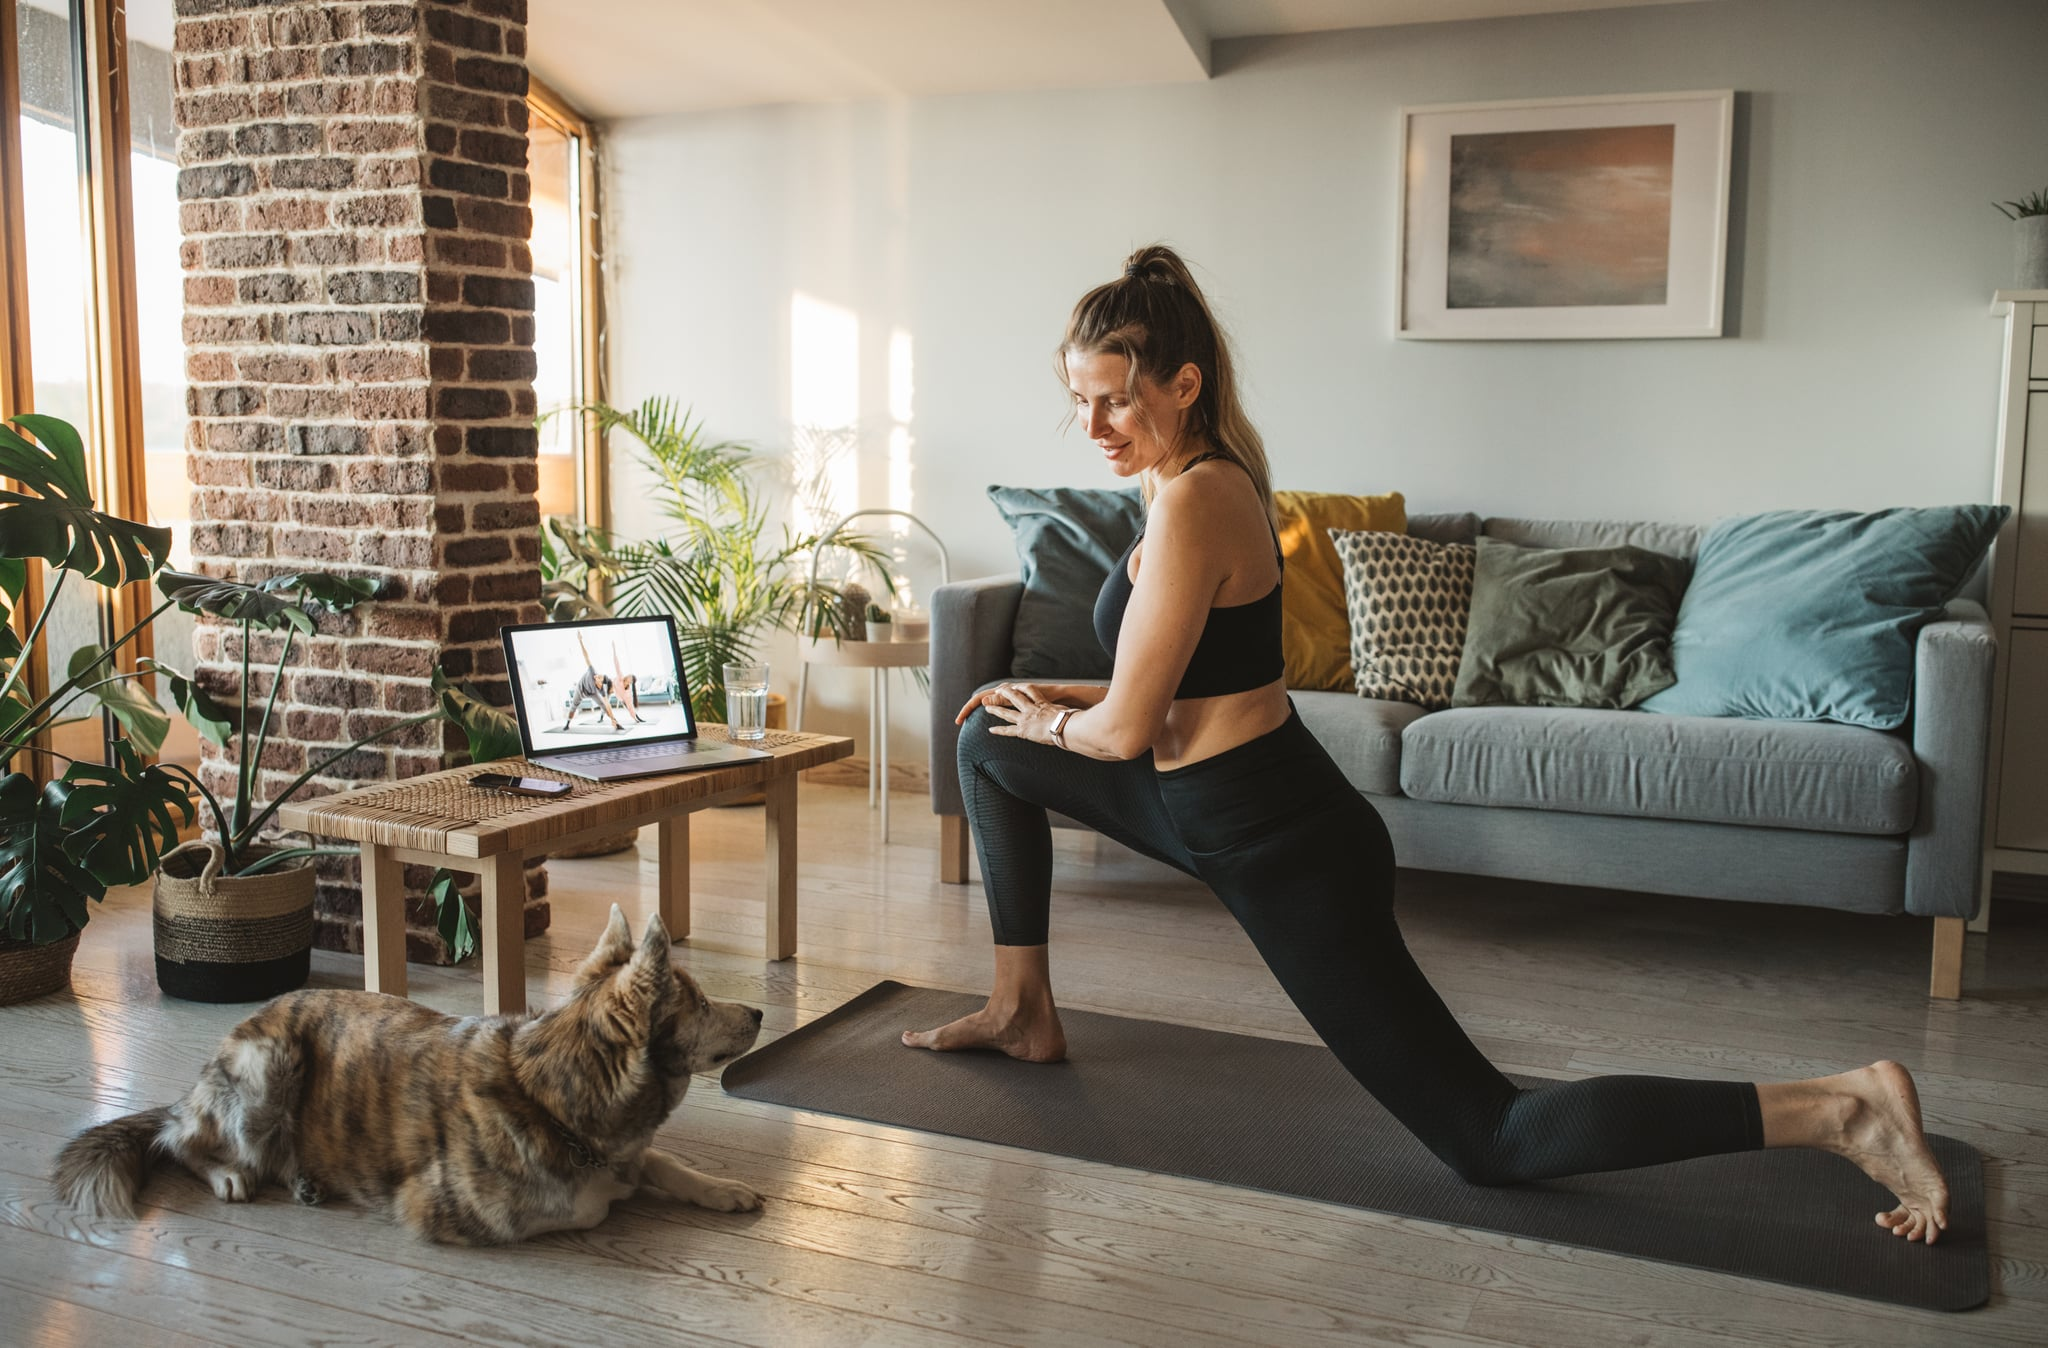 Women at home during pandemic isolation doing online yoga class